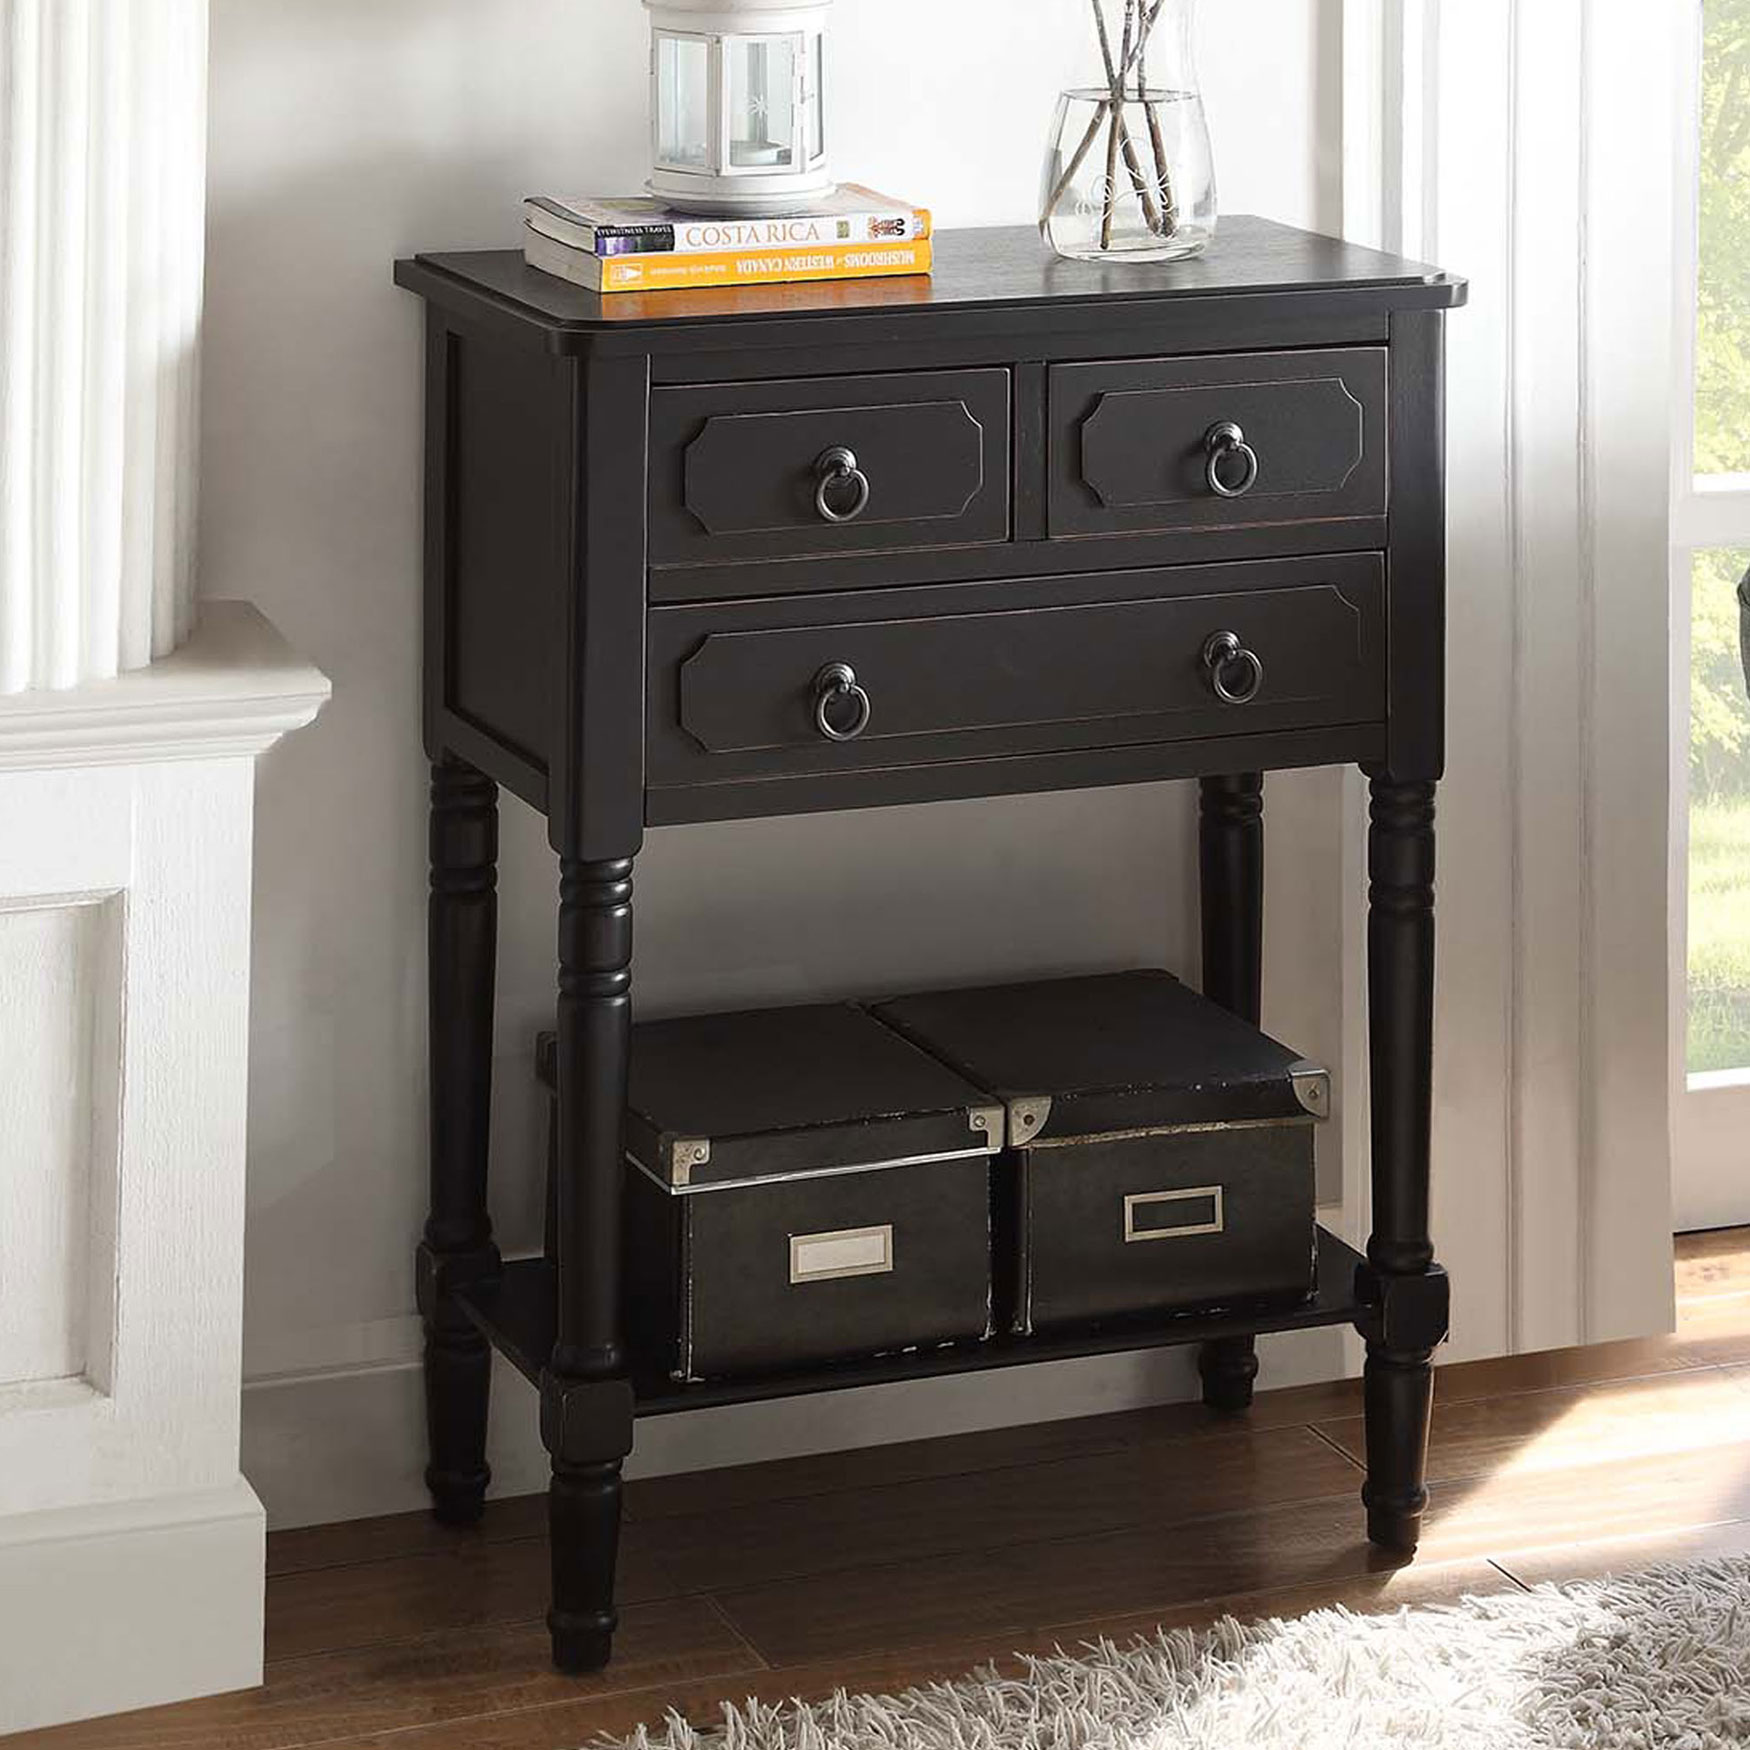 3 Drawer Chest with Open Shelf,